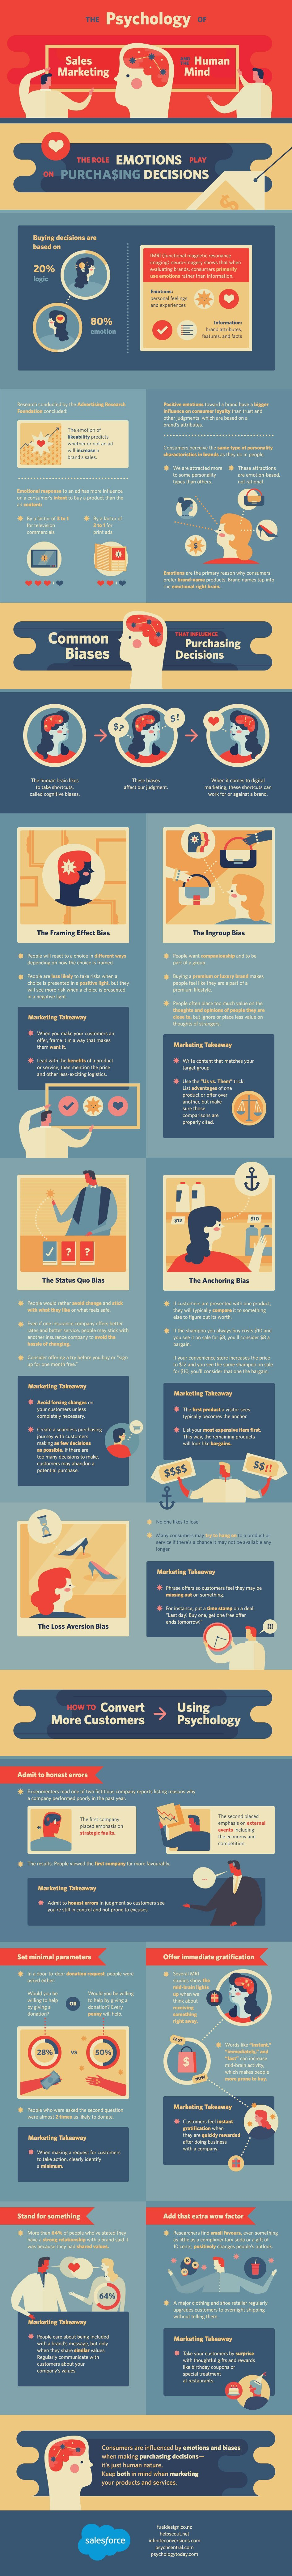 Psychology of Marketing infographic